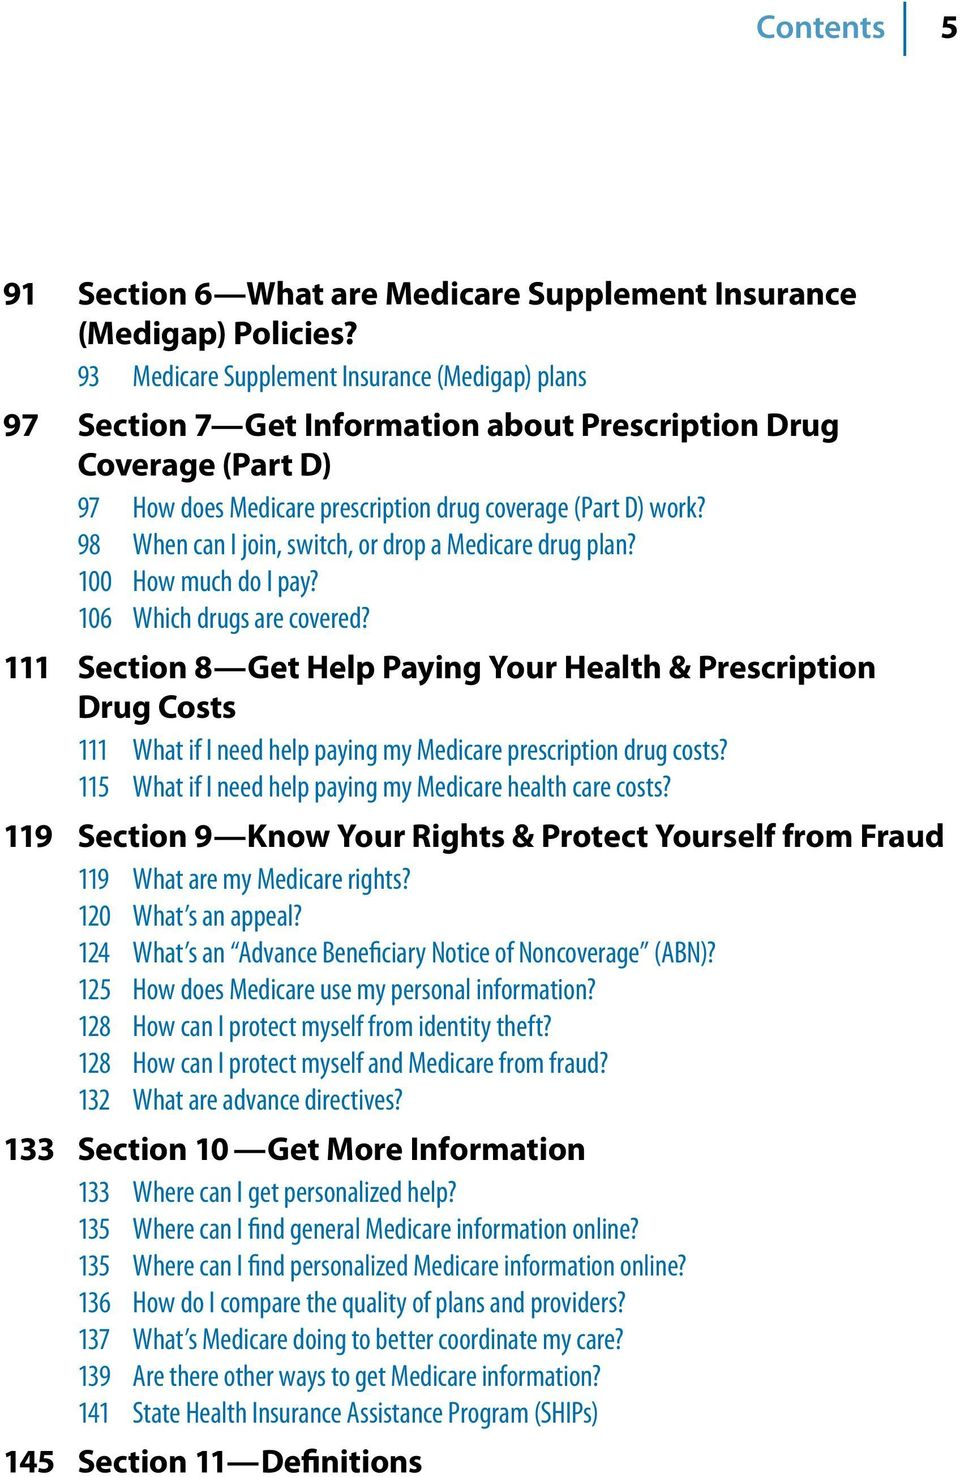 98 When can I join, switch, or drop a Medicare drug plan? 100 How much do I pay? 106 Which drugs are covered?